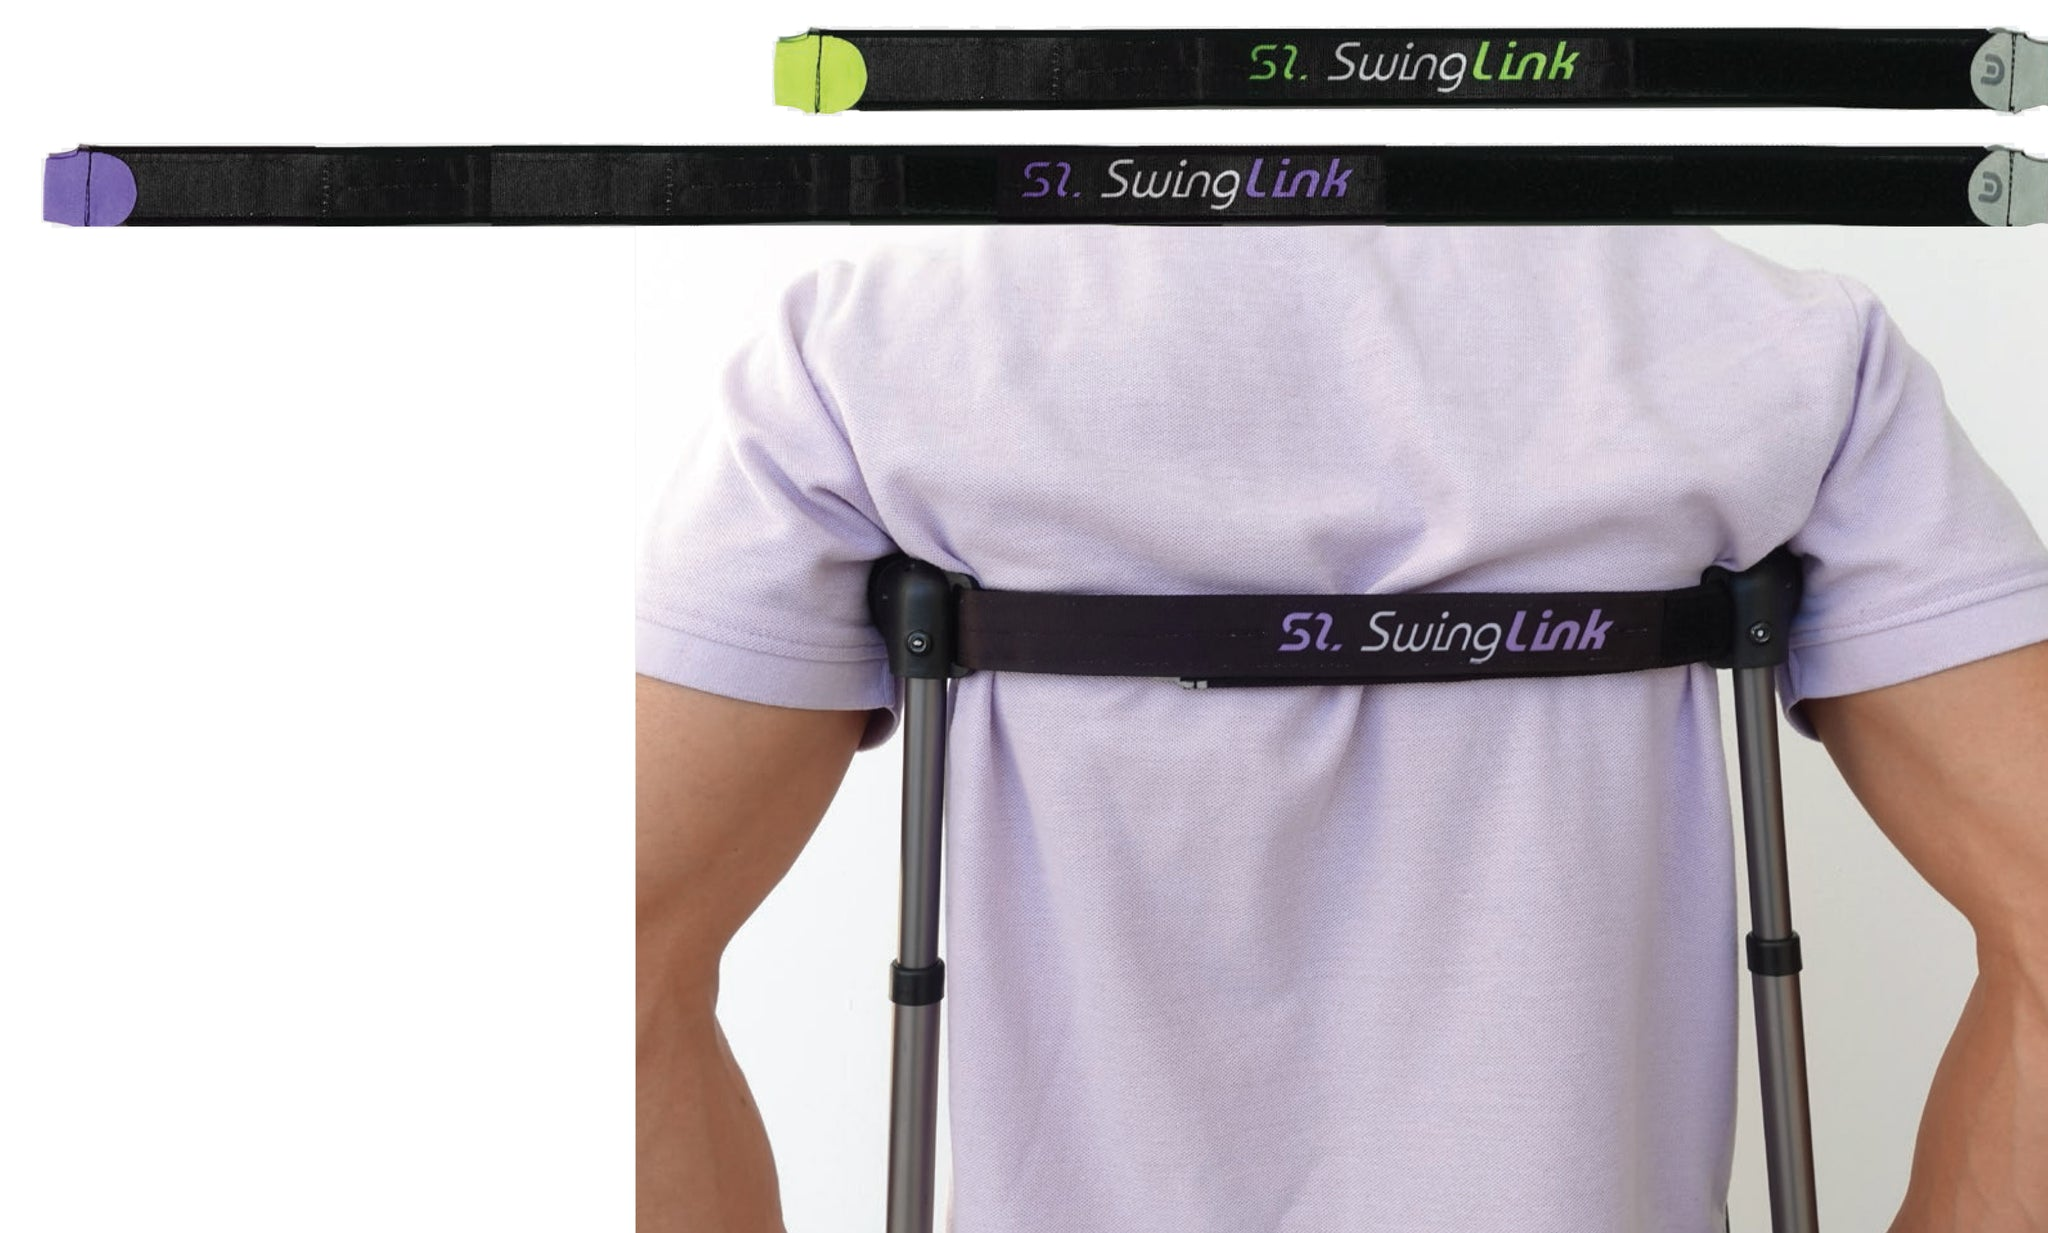 S1 Swing Link - OEM Replacement Part for Sport Swings